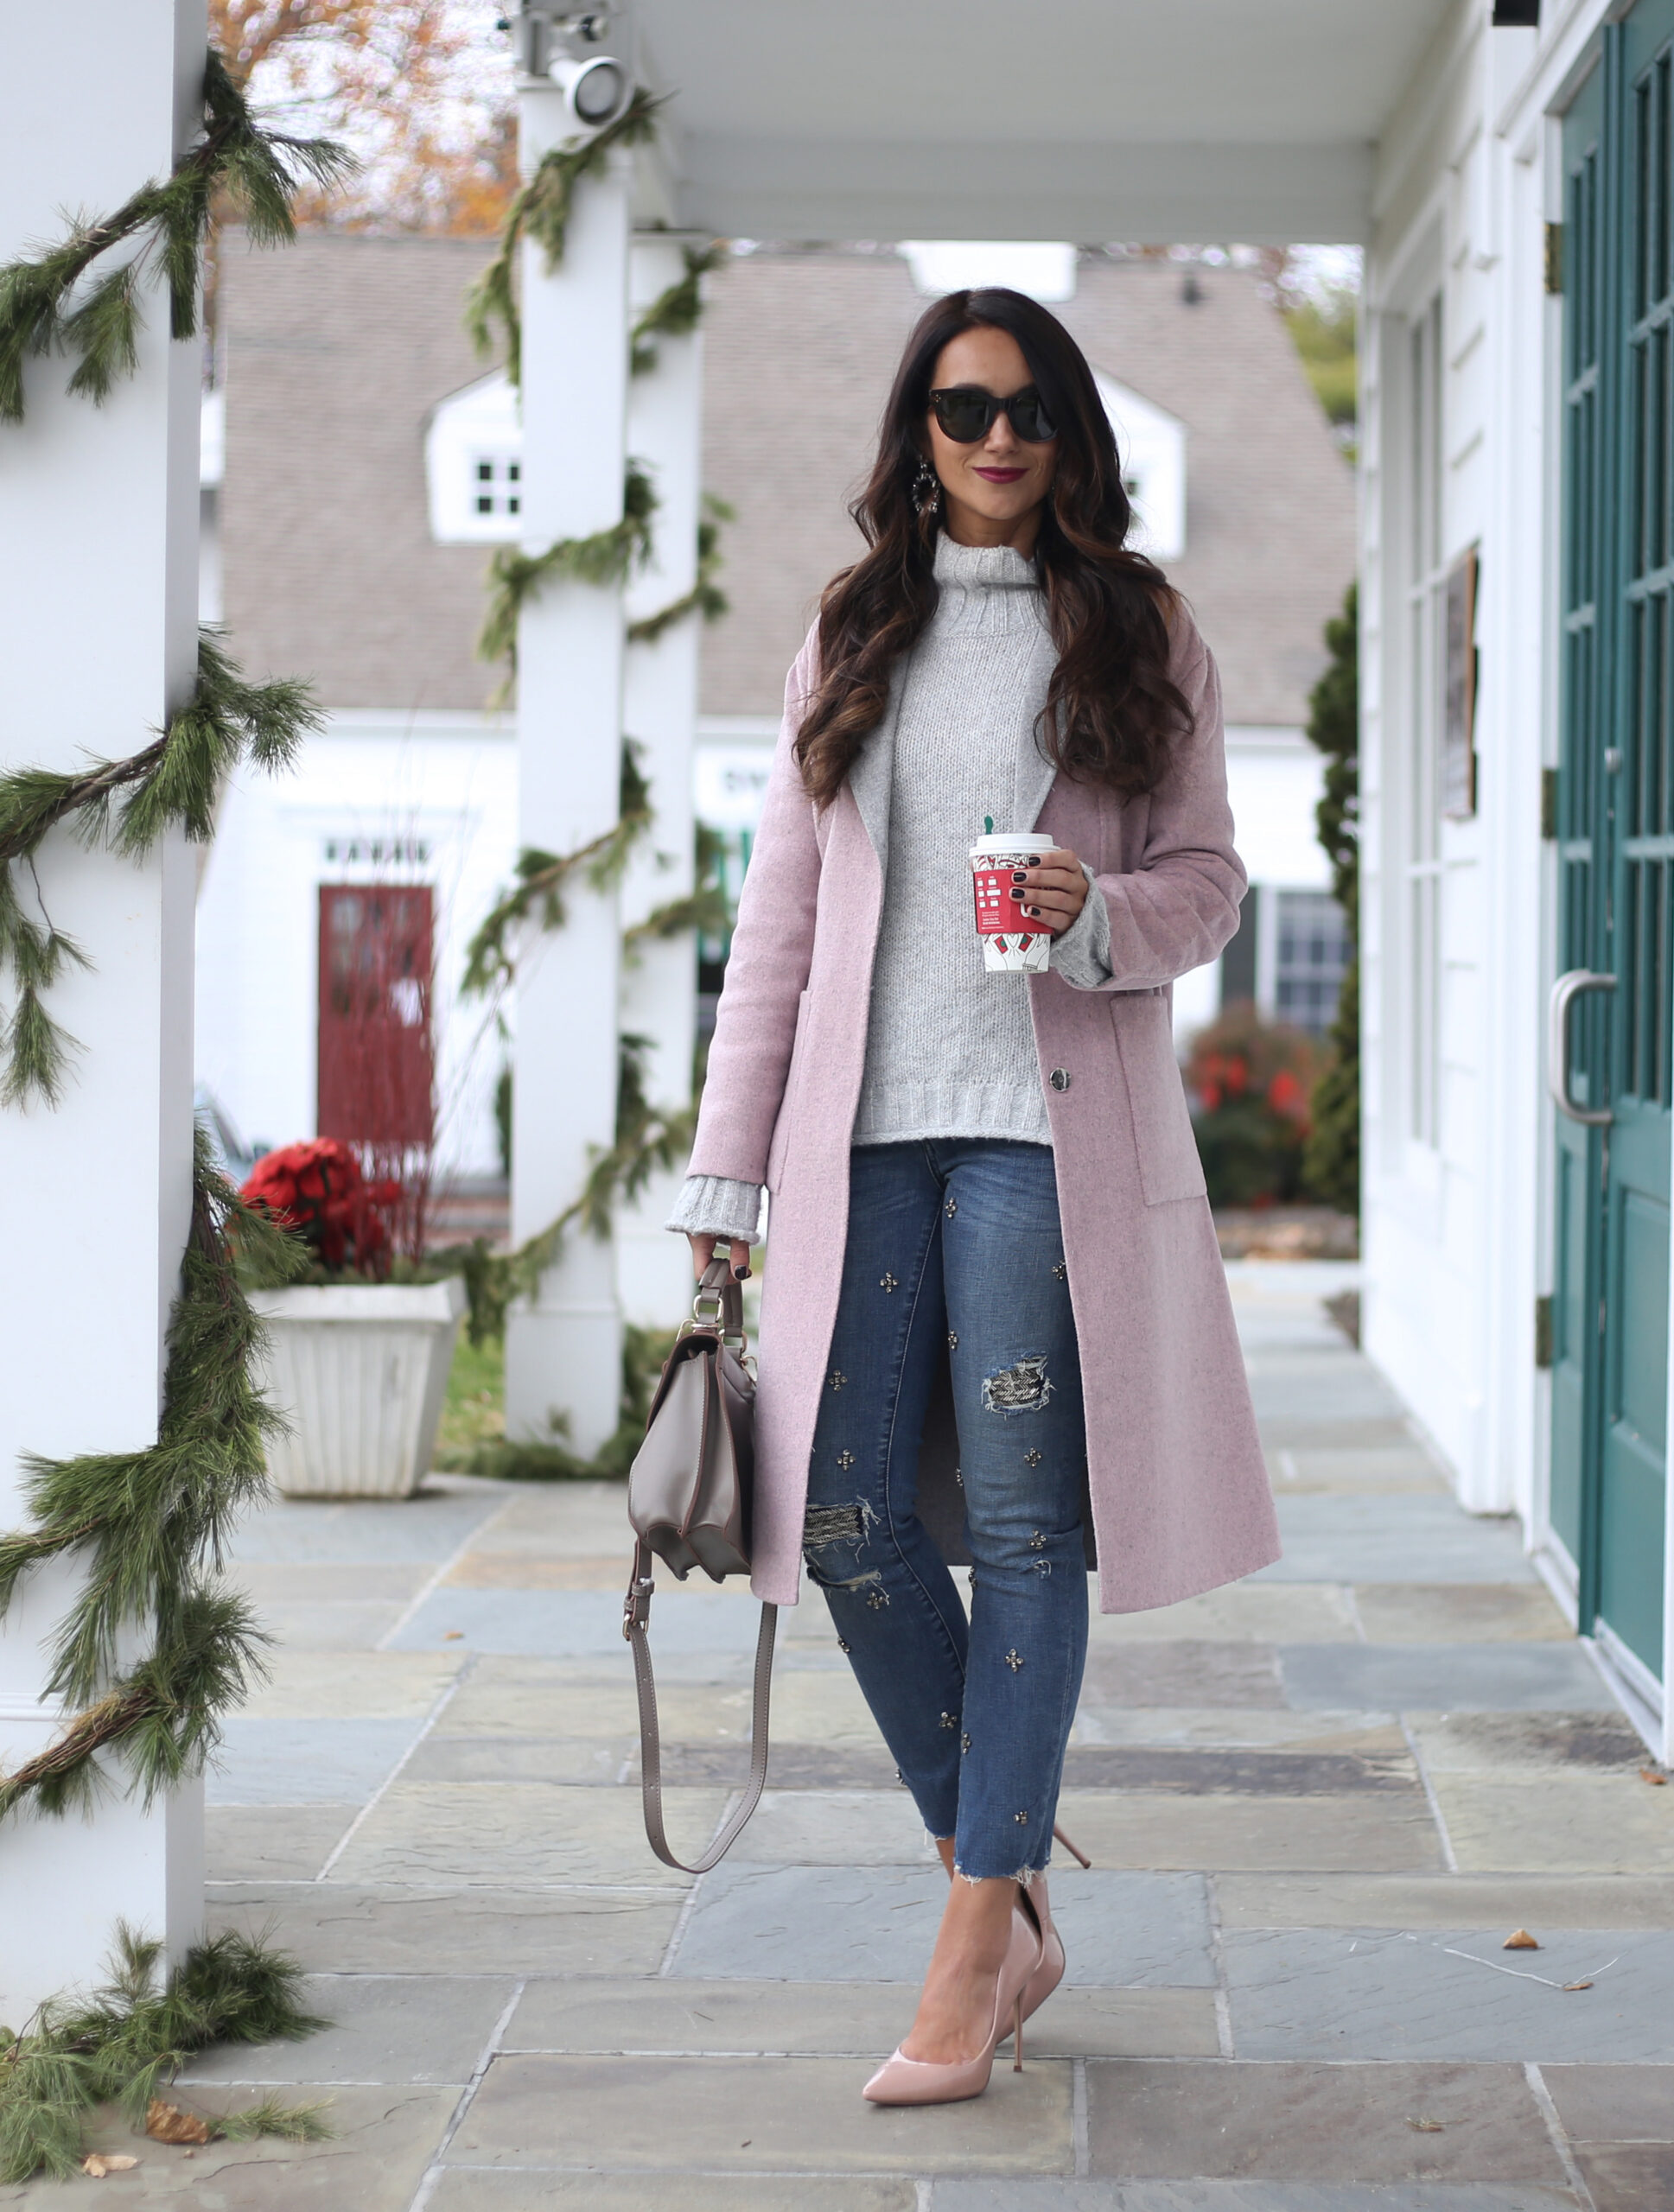 anna monteiro style blogger of blushing rose style blog wearing pink and grey